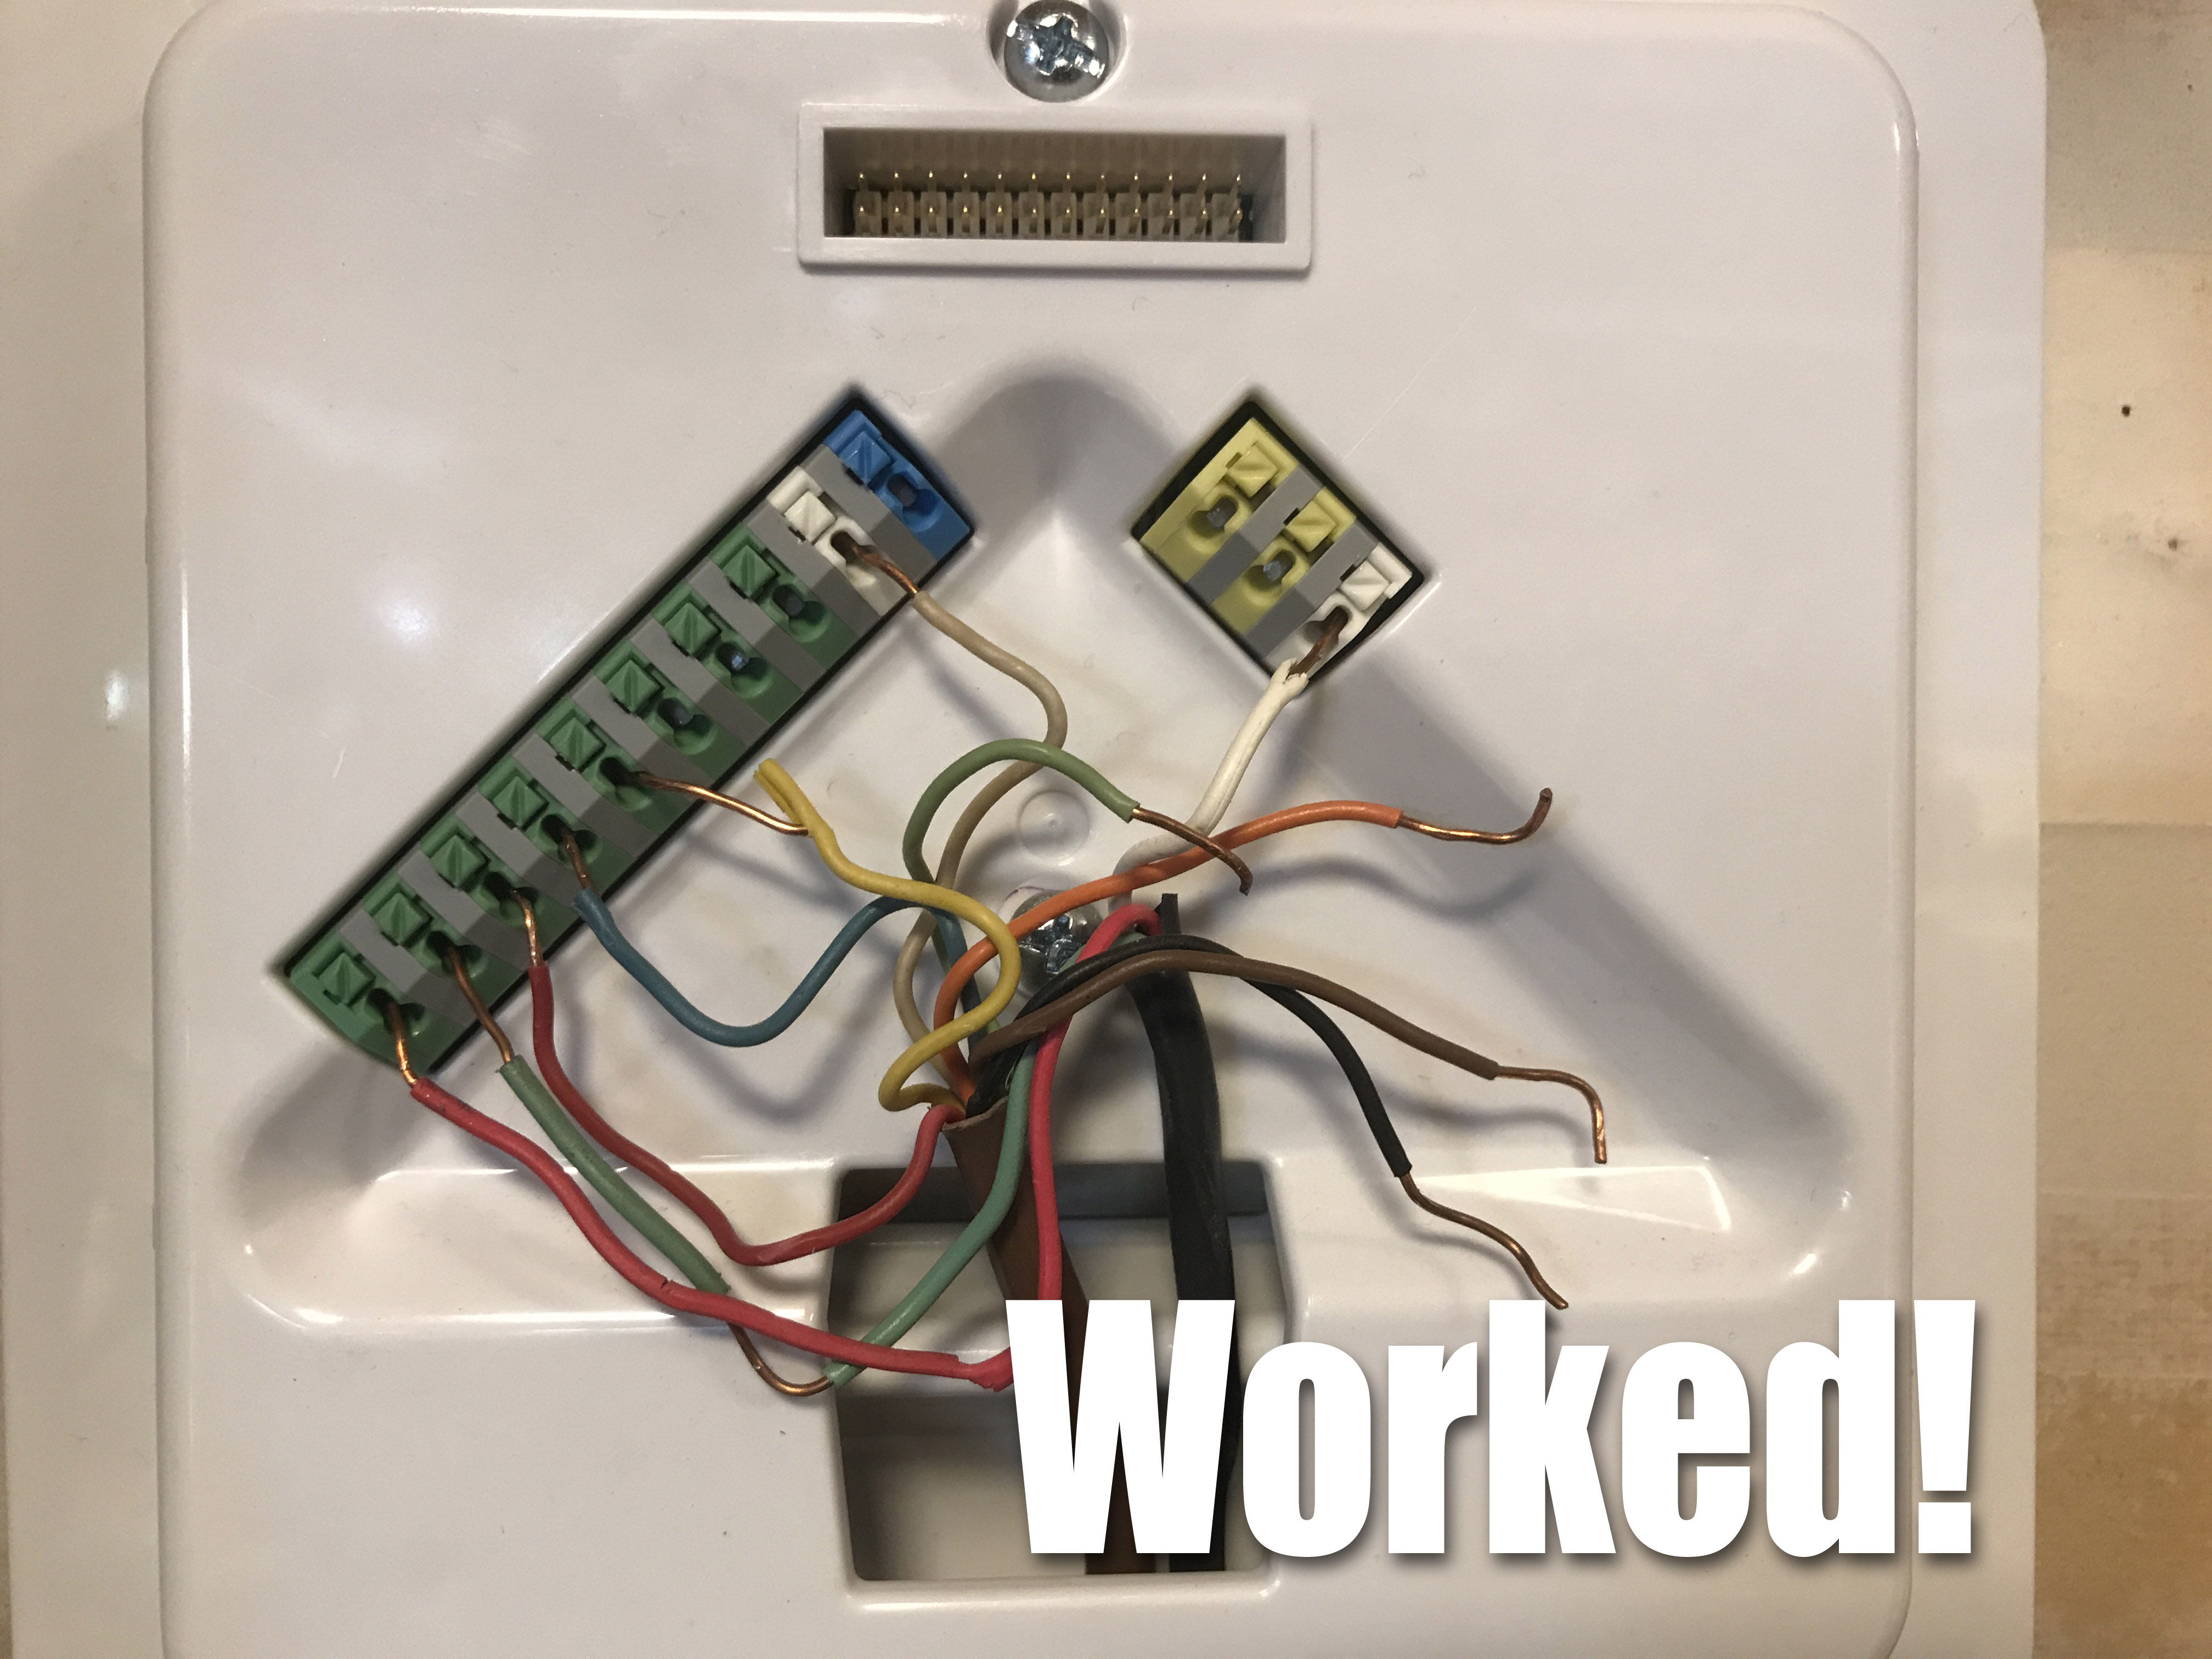 fingers crossed all continues to work as we enter sprinkler season and i'll  be giving my new (old) system a good working